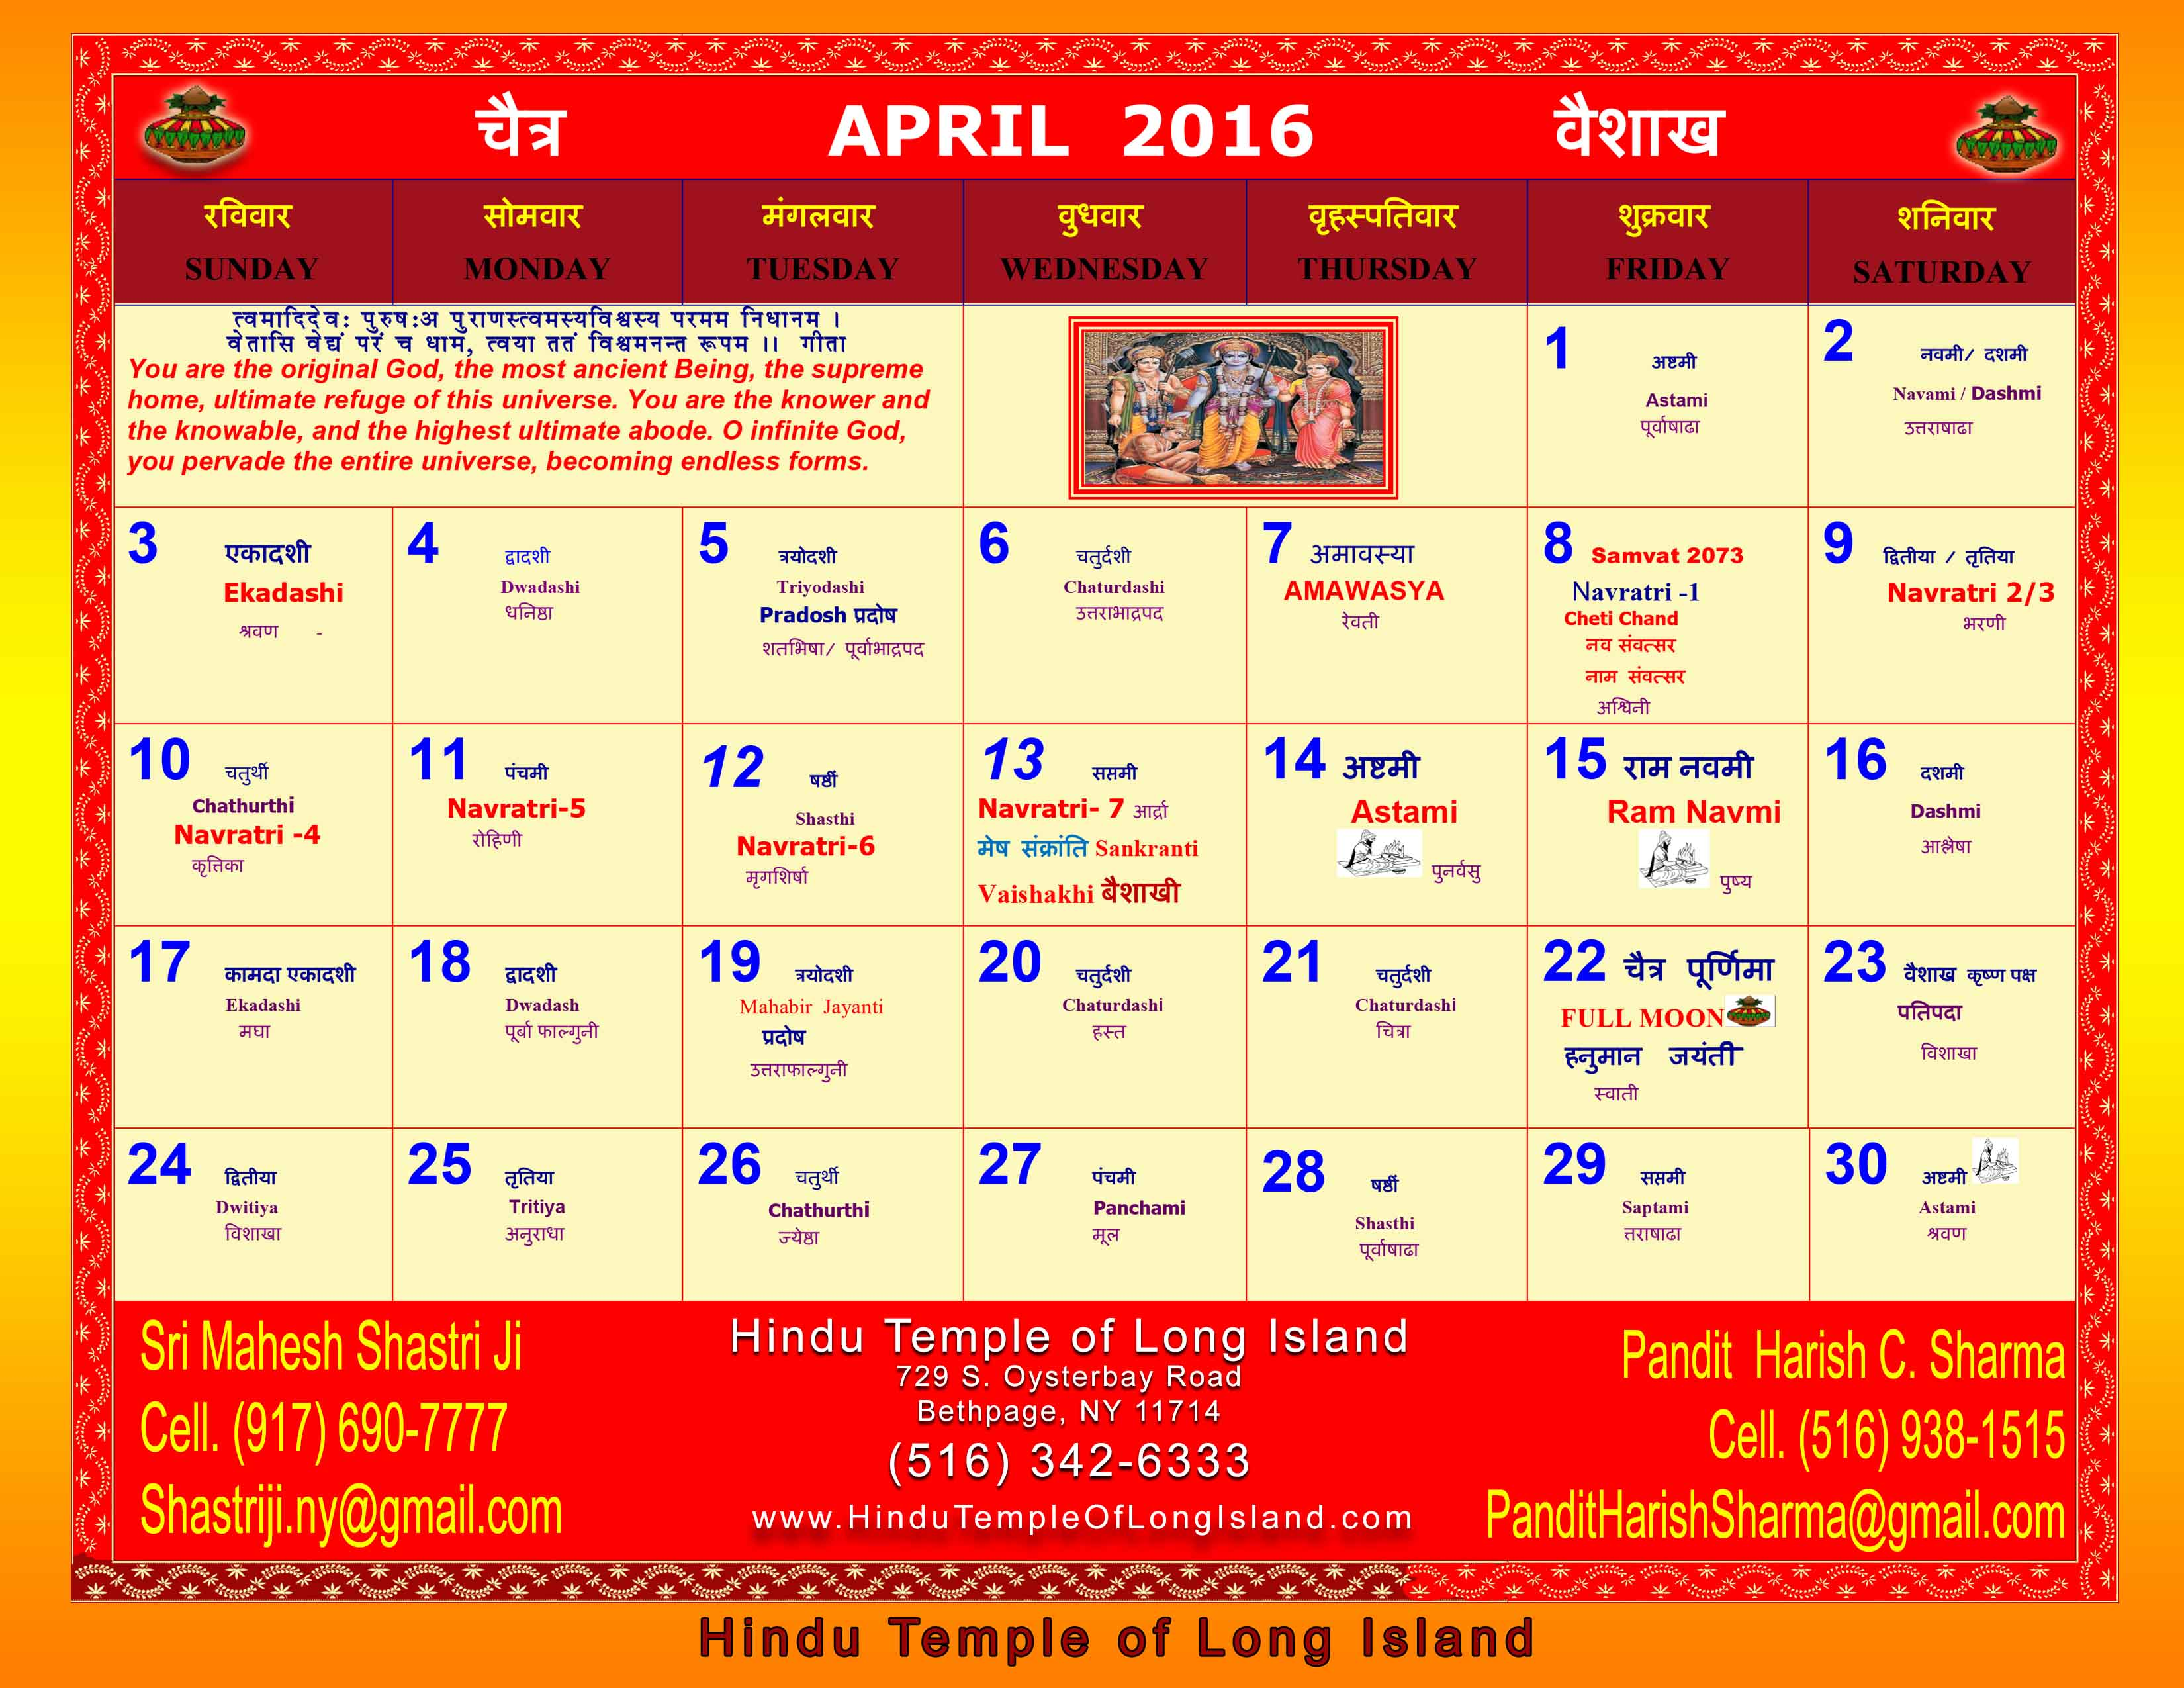 Hindu Calendar for Year 2012, 2011, 2010, 2009, 2008, 2007, 2006 & 2005